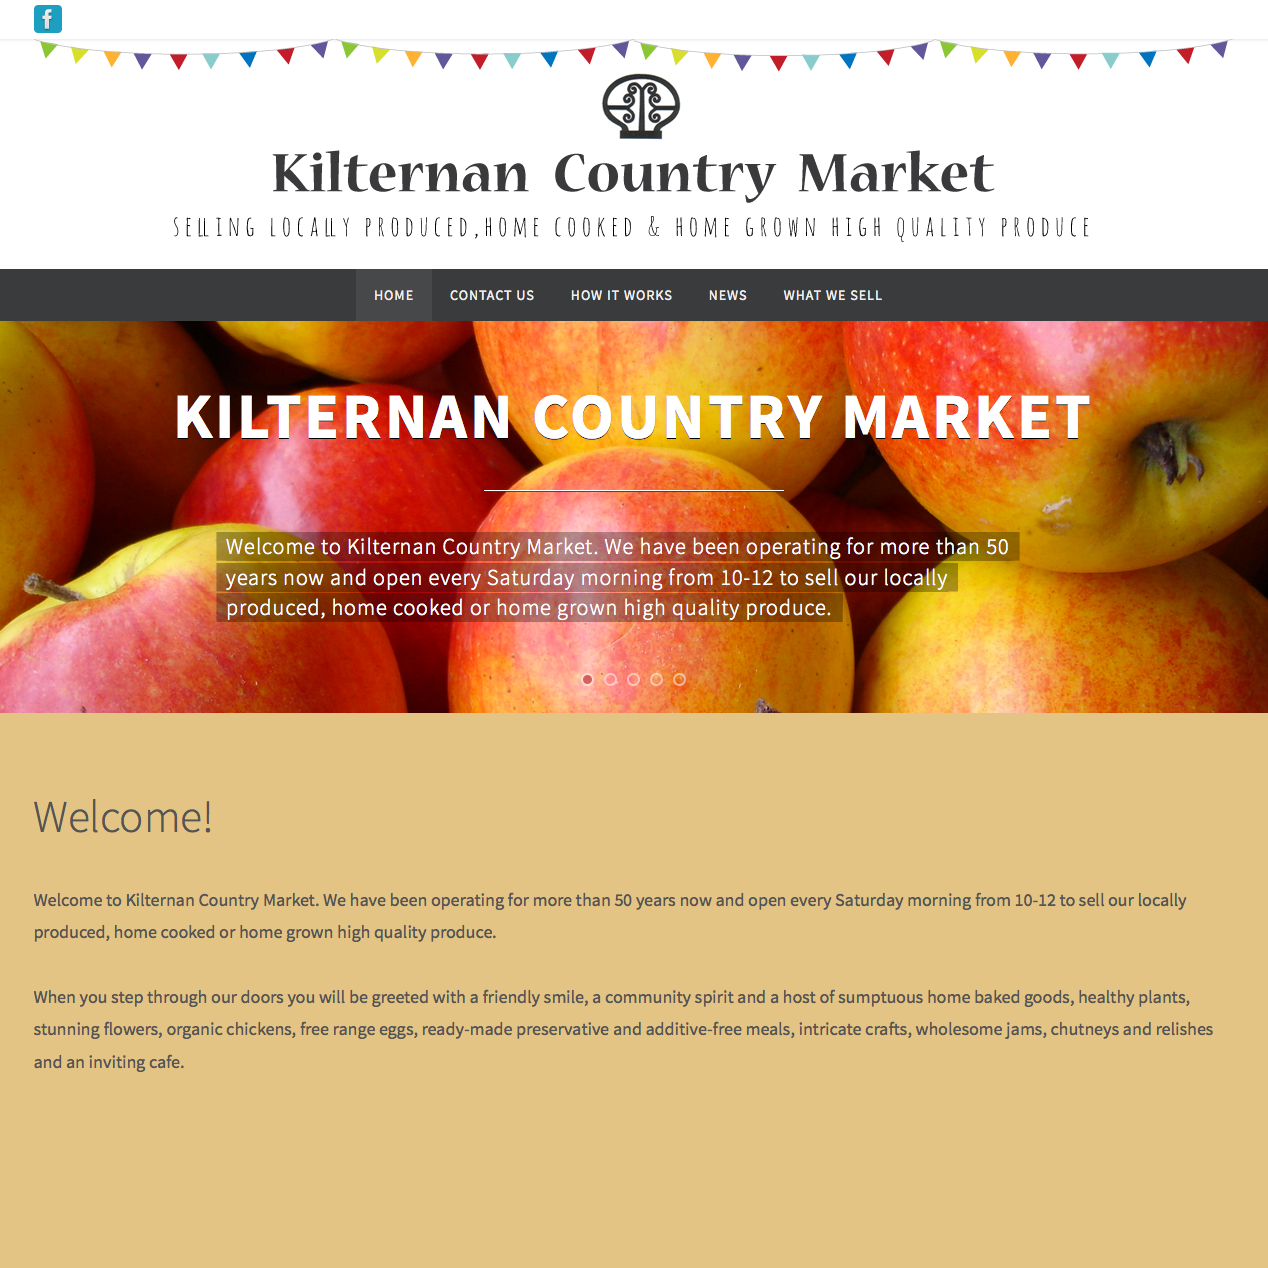 Kilternan Country Market